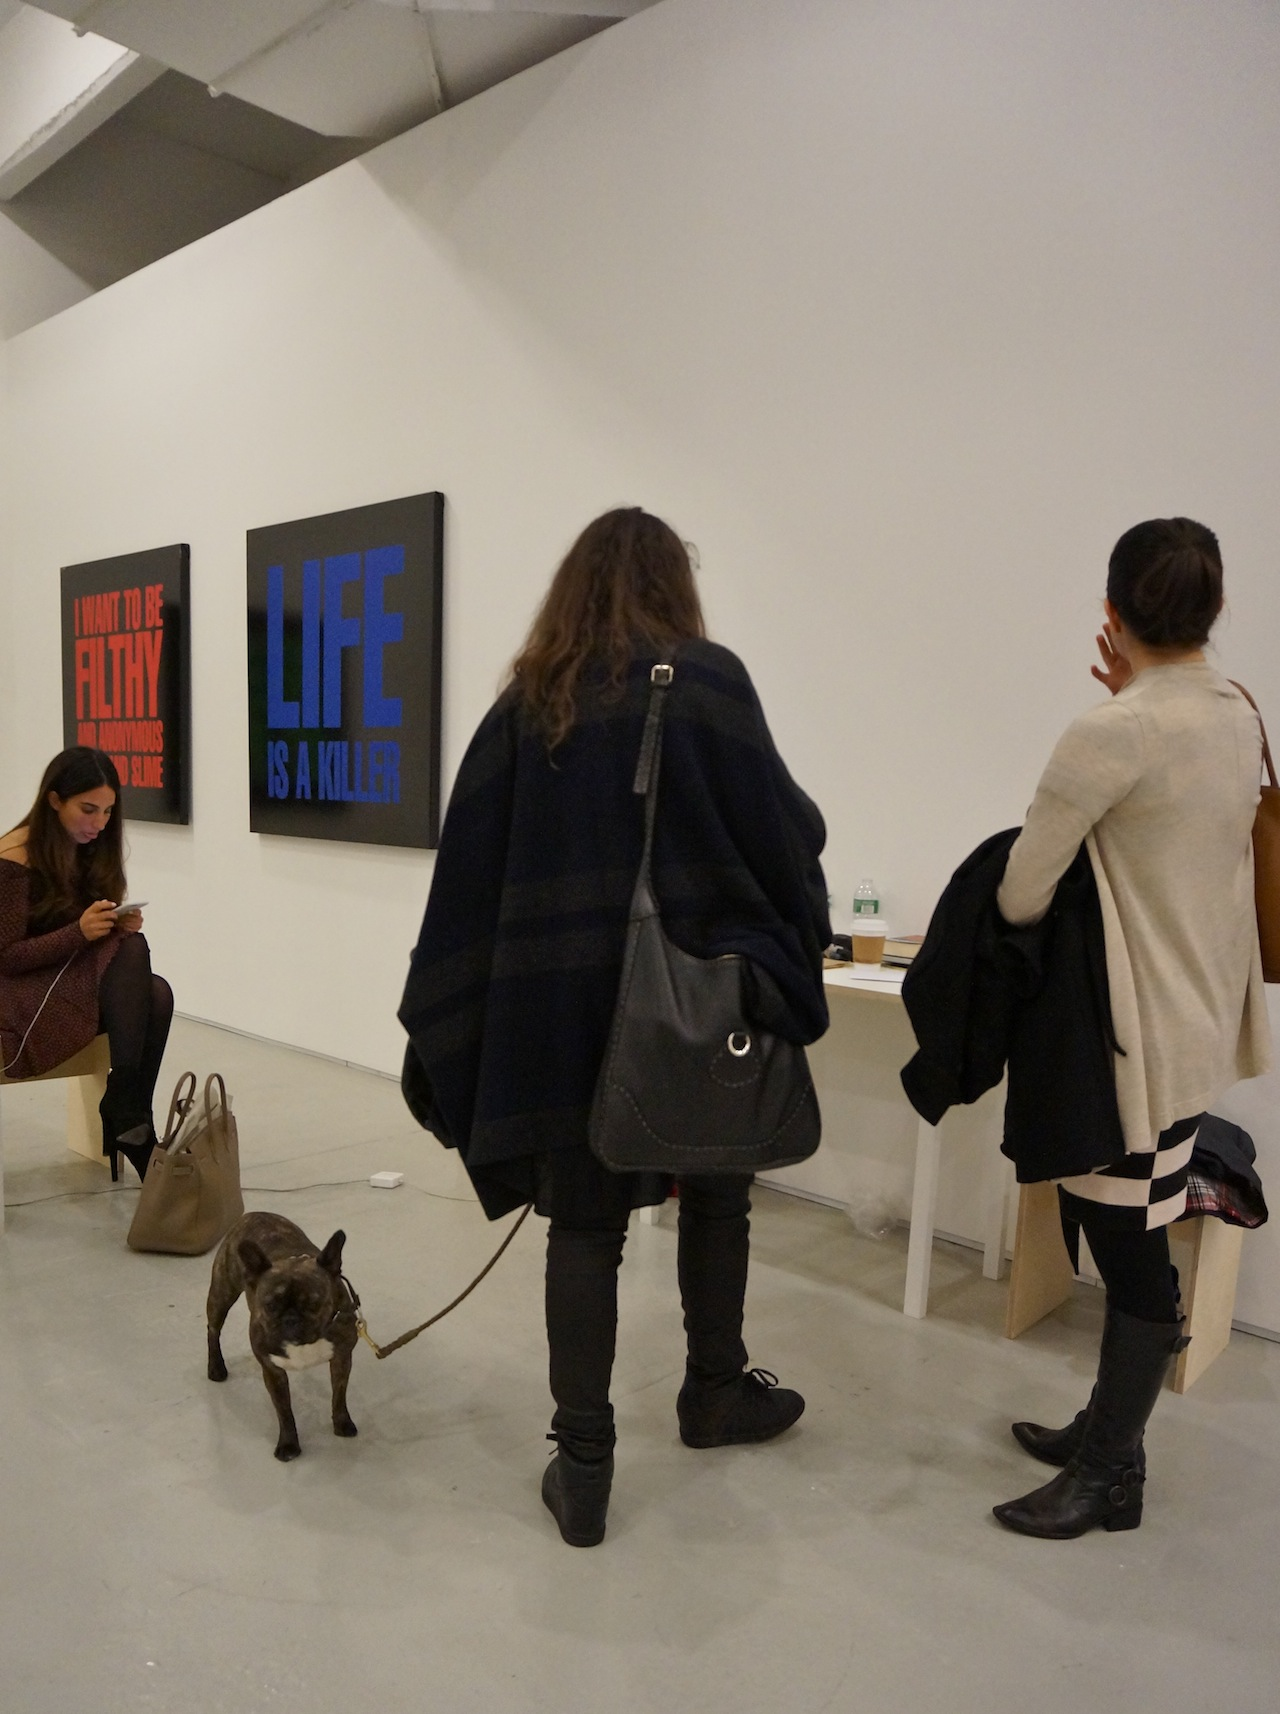 Women and dog visit the booth of Max Wigram Gallery, showing 1989 paintings by John Giorno